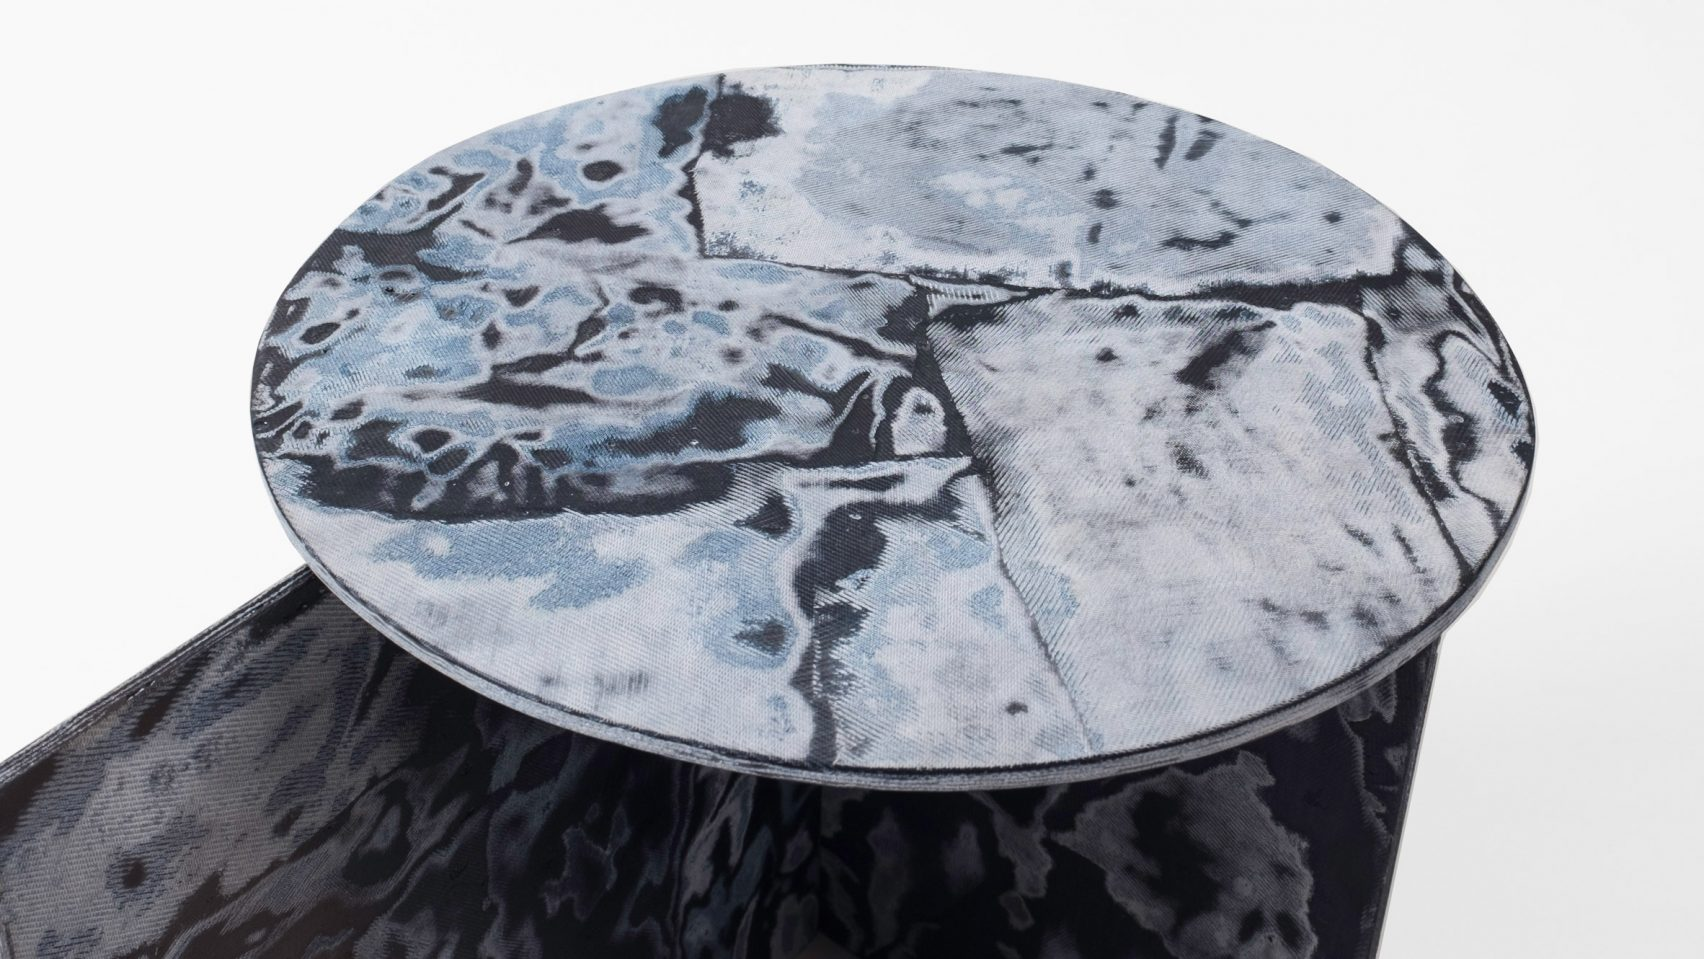 bahia-denim-furniture-collection-sophie-rowley-design_dezeen_2364_hero-2-1704x959